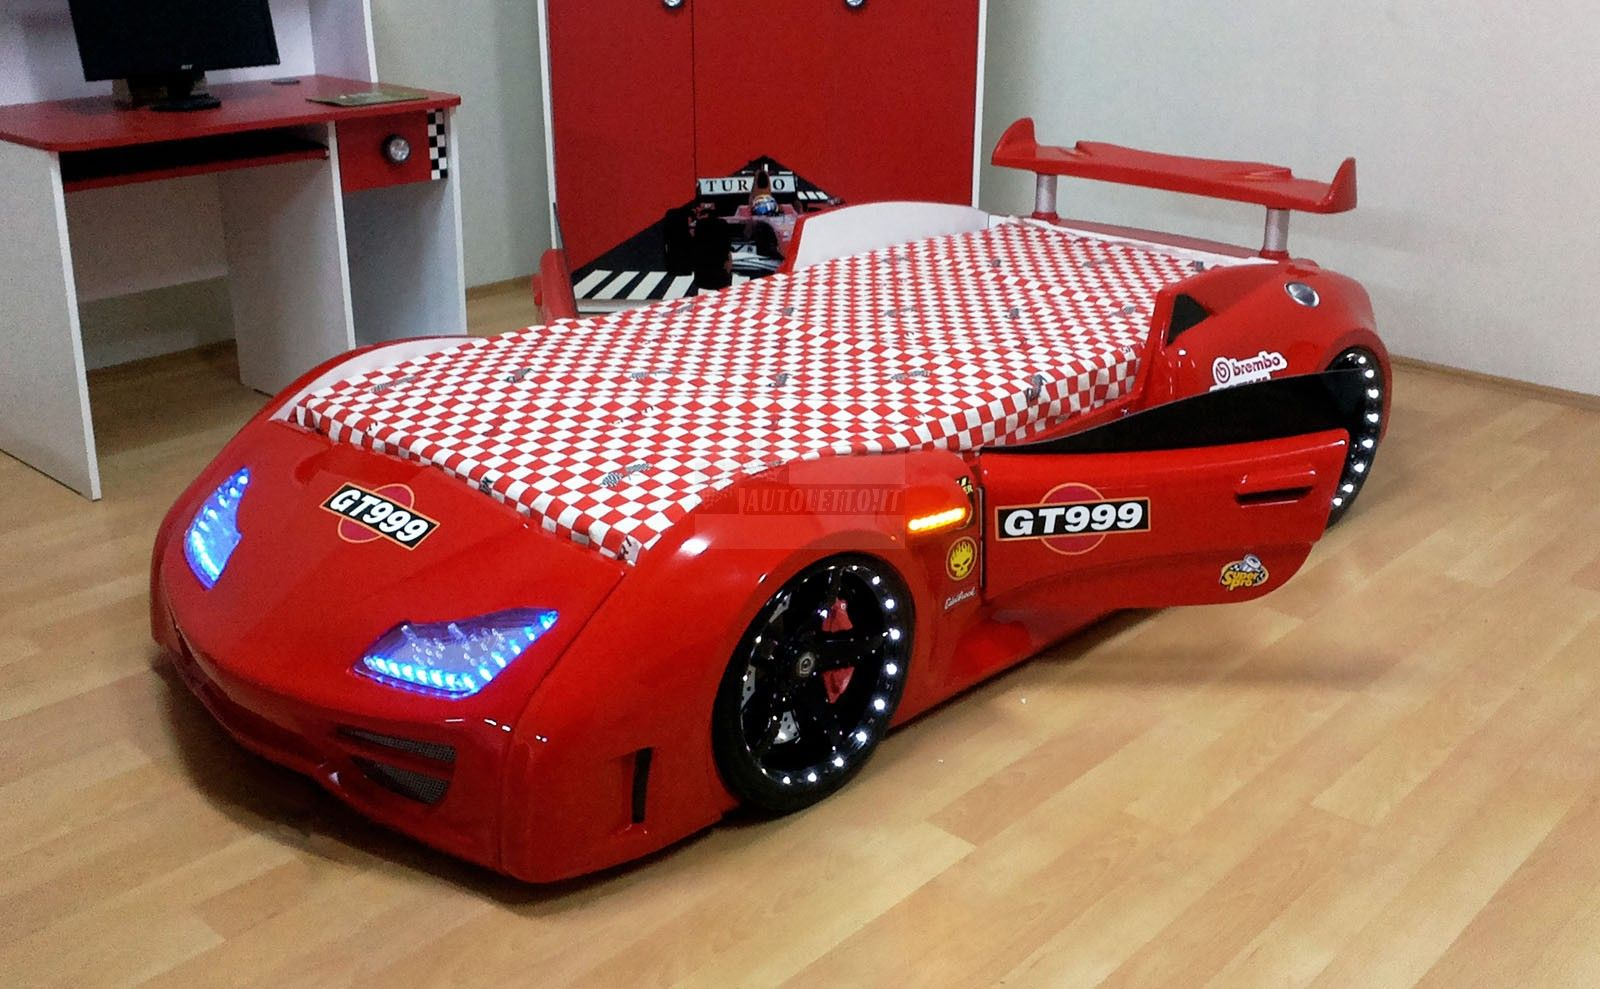 Strange Beds strange beds - google search | products, cool, crazy, cars